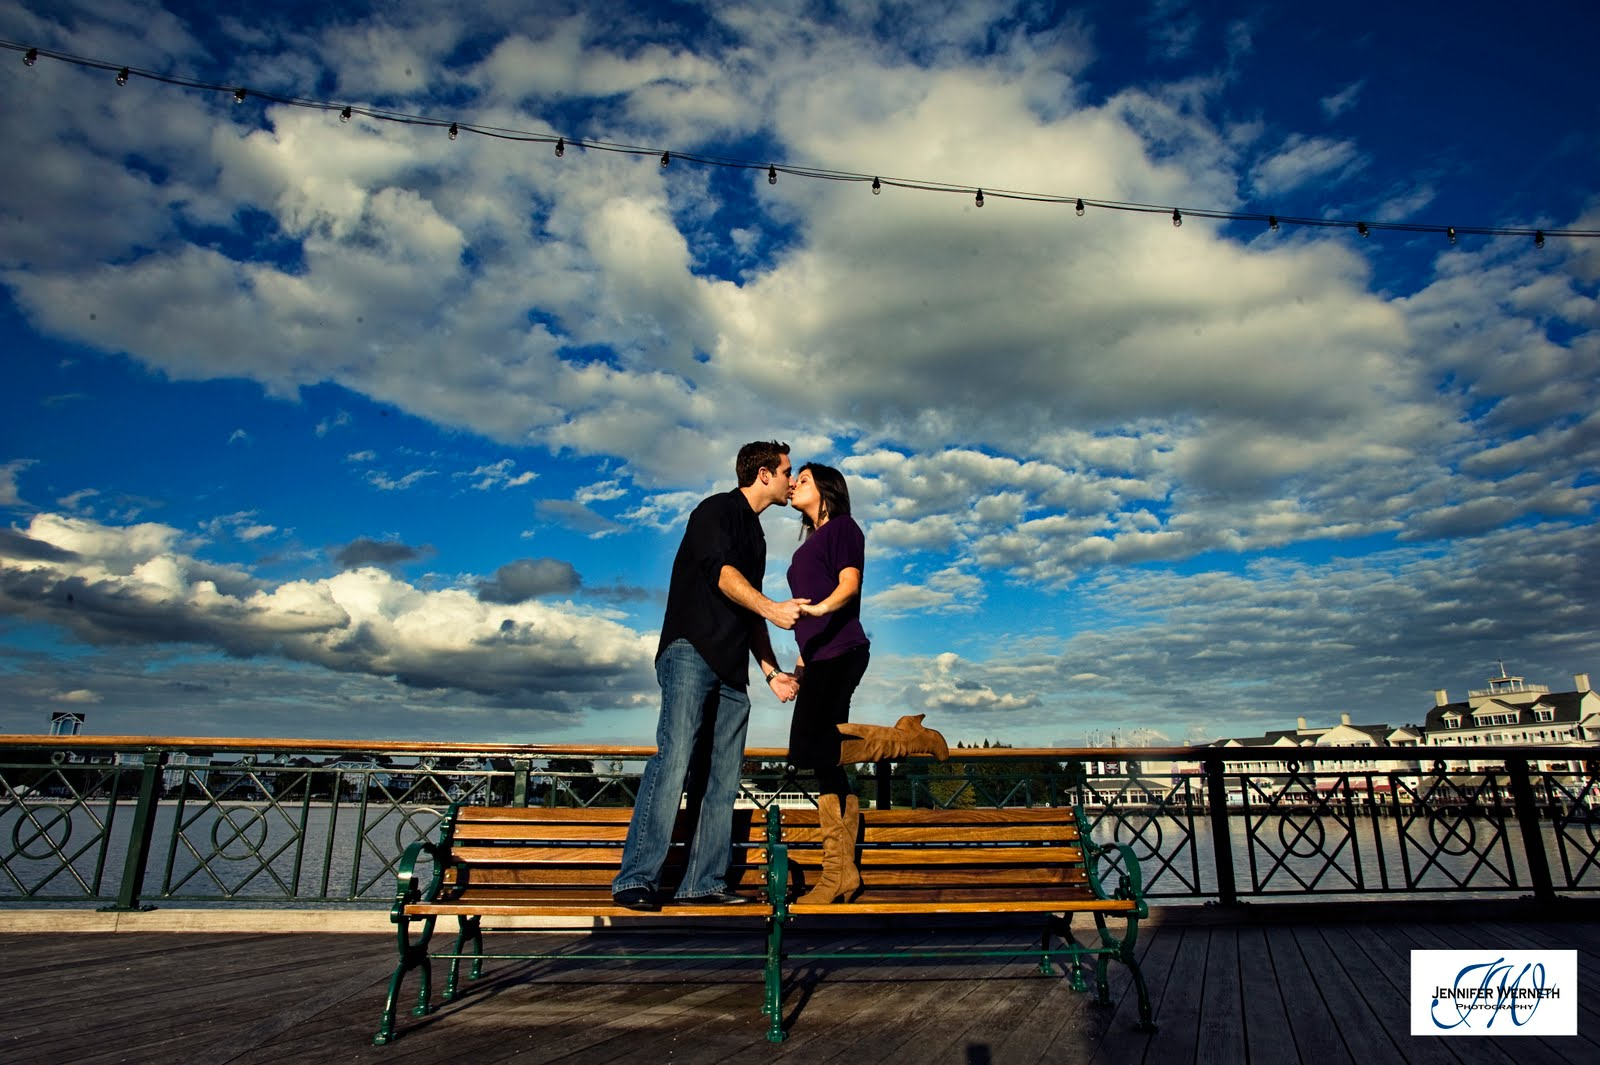 Engagement Photography at Disney's Boardwalk Resort at Disney World